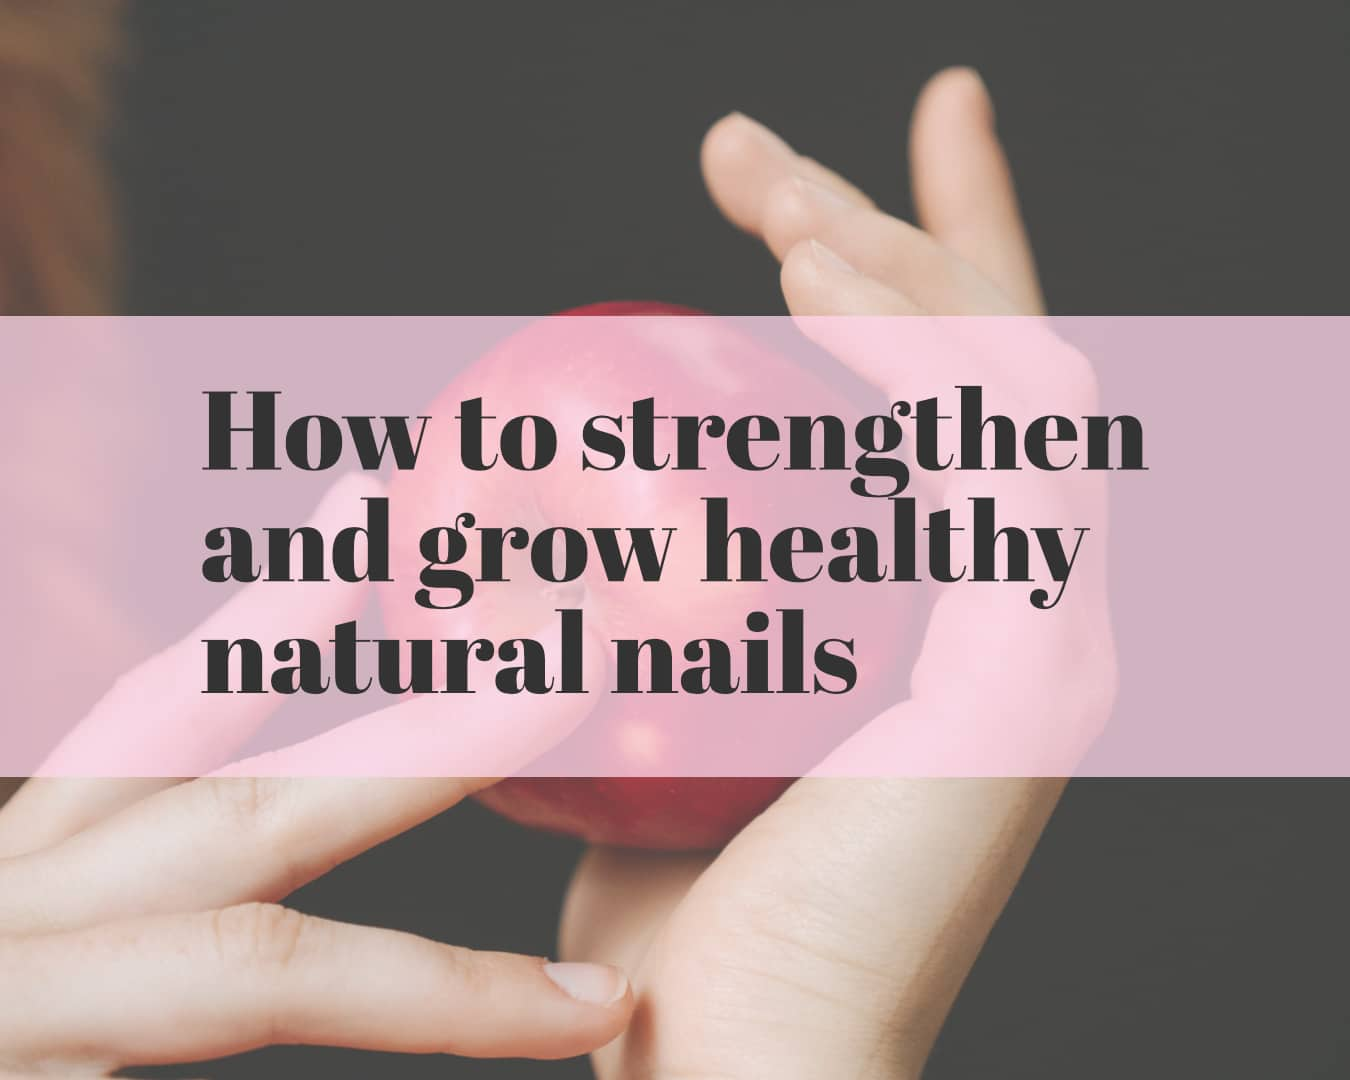 How to strengthen and grow healthy natural nails